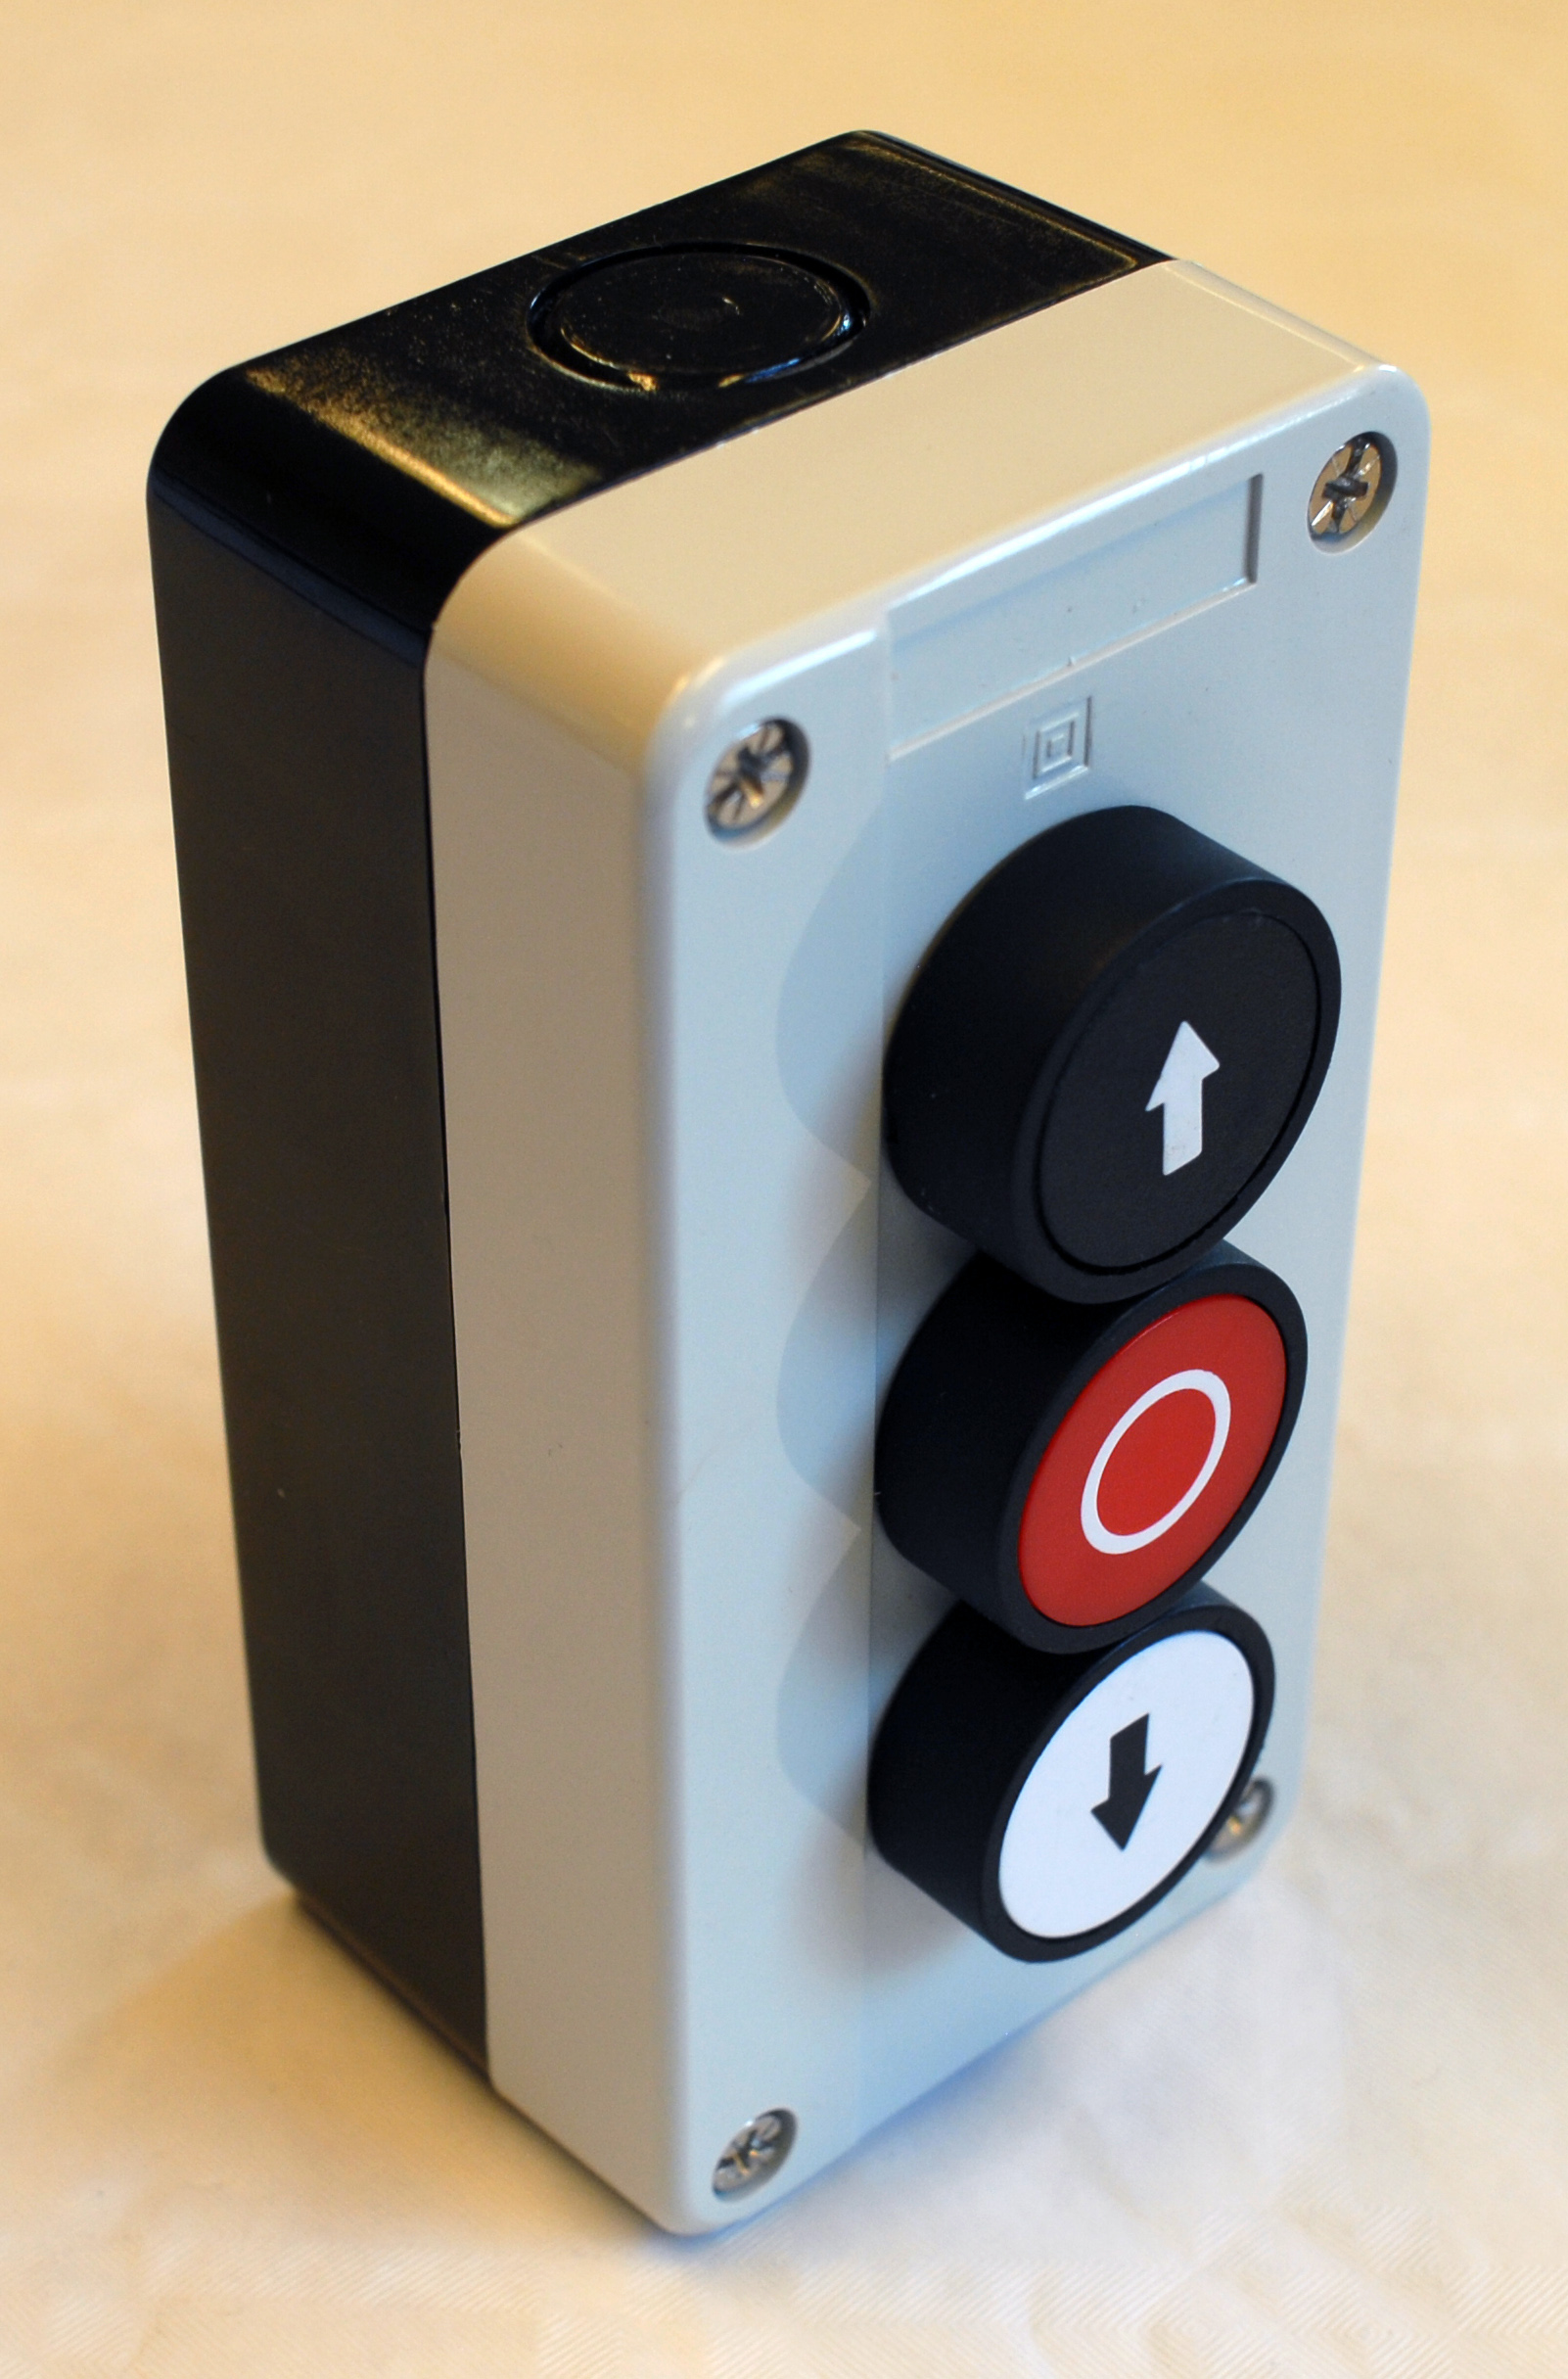 Industry Door Control Station With 3 Push Button In A